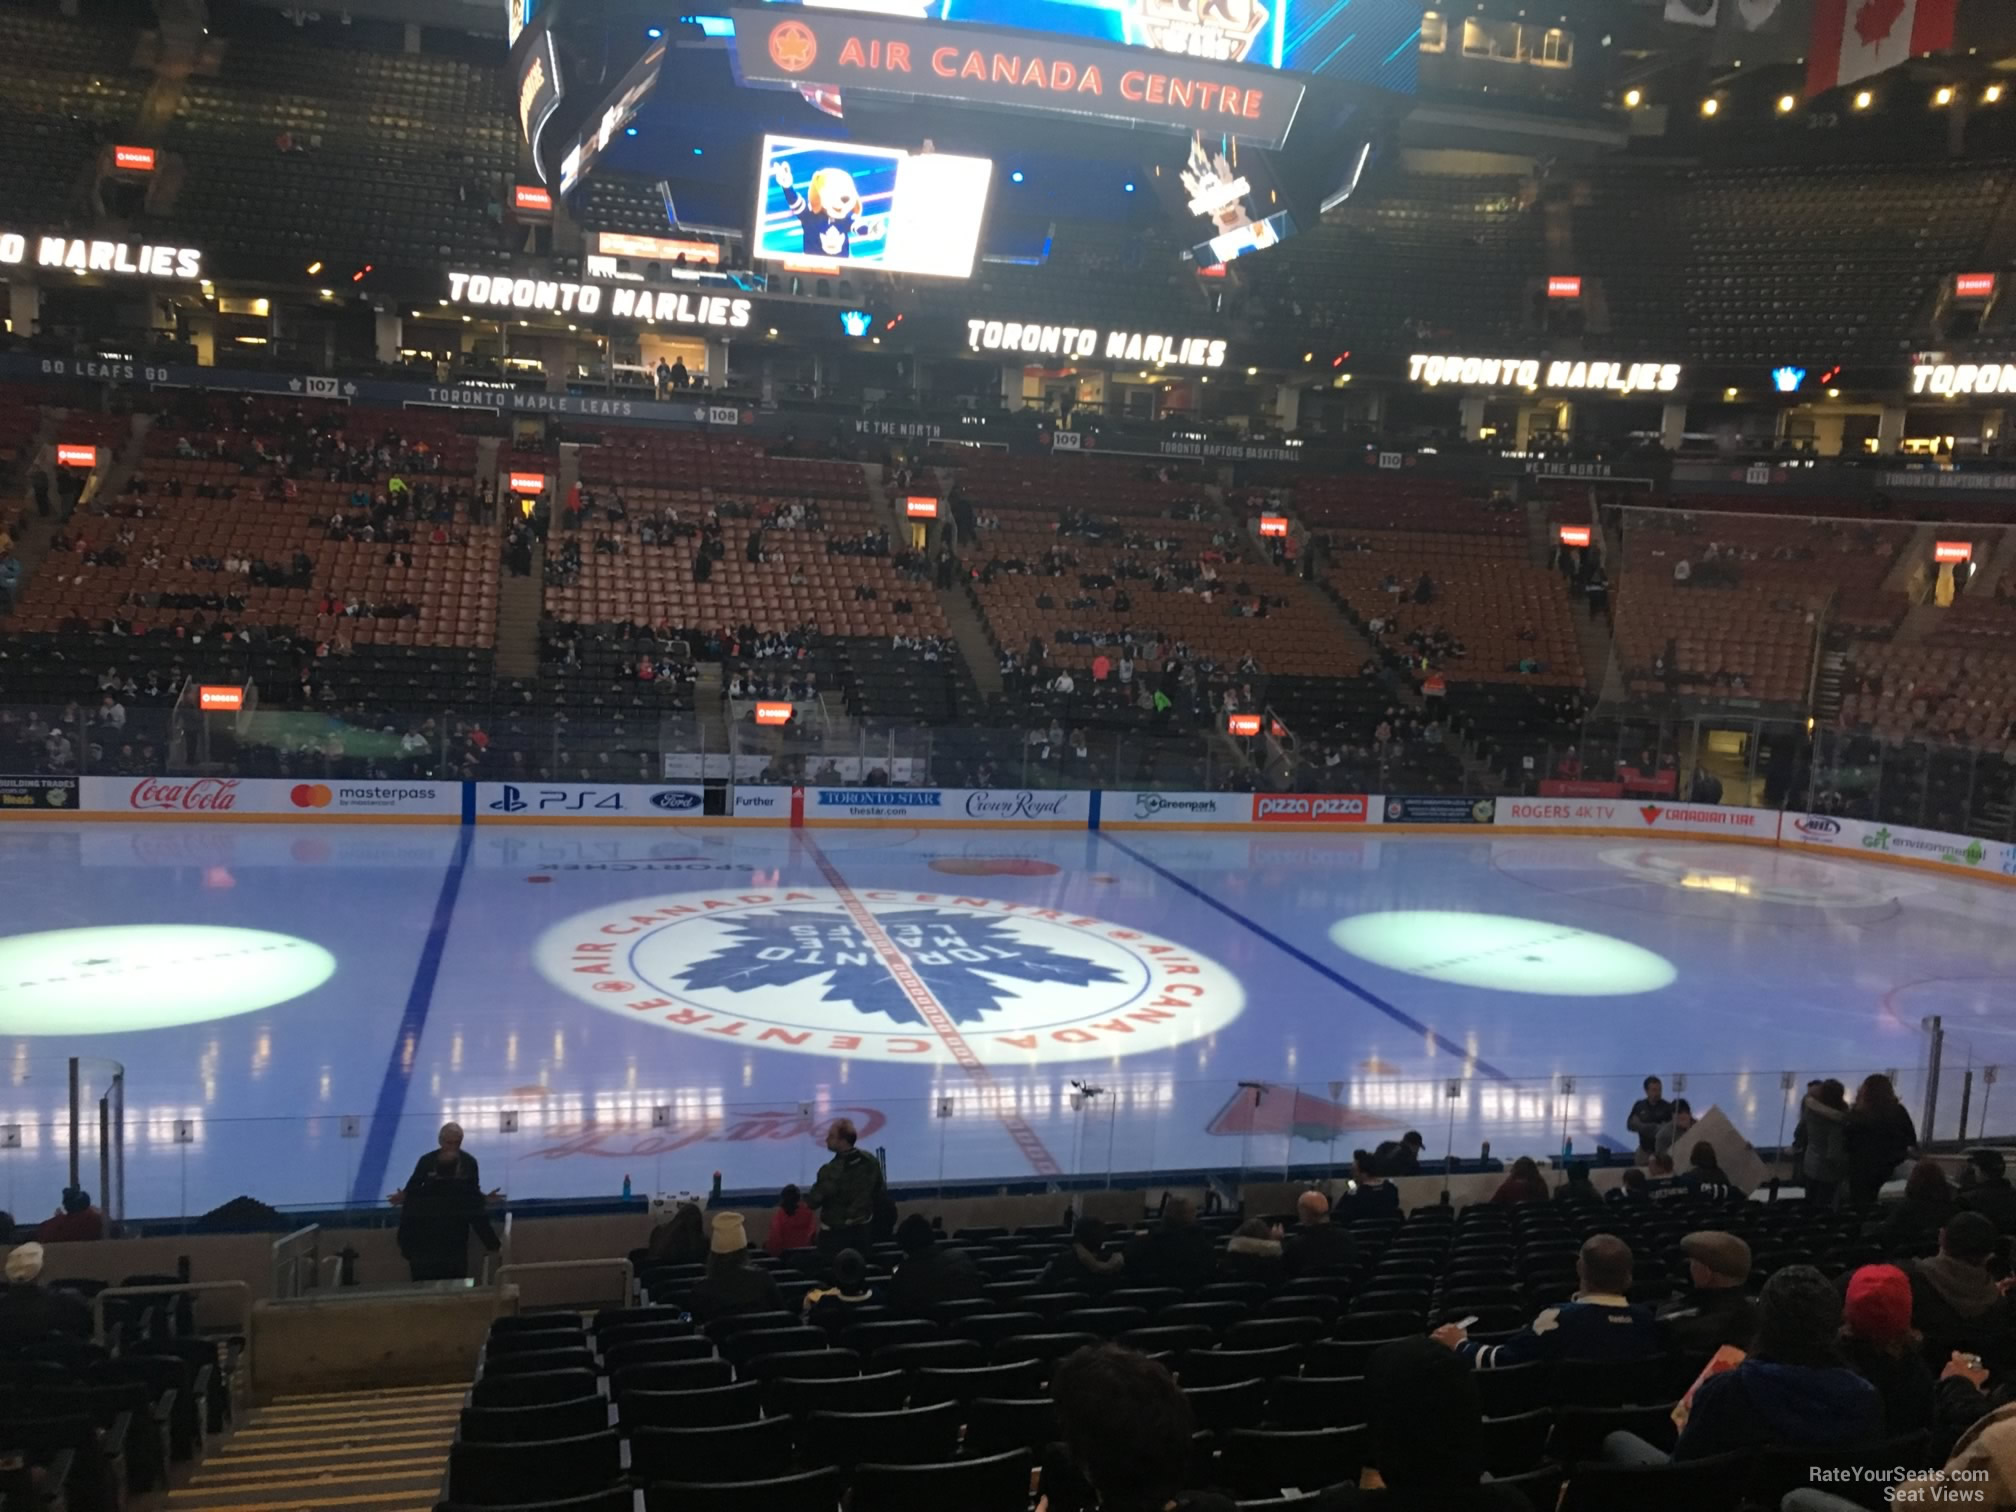 Toronto Maple Leafs Seat View for Scotiabank Arena Section 119, Row 20